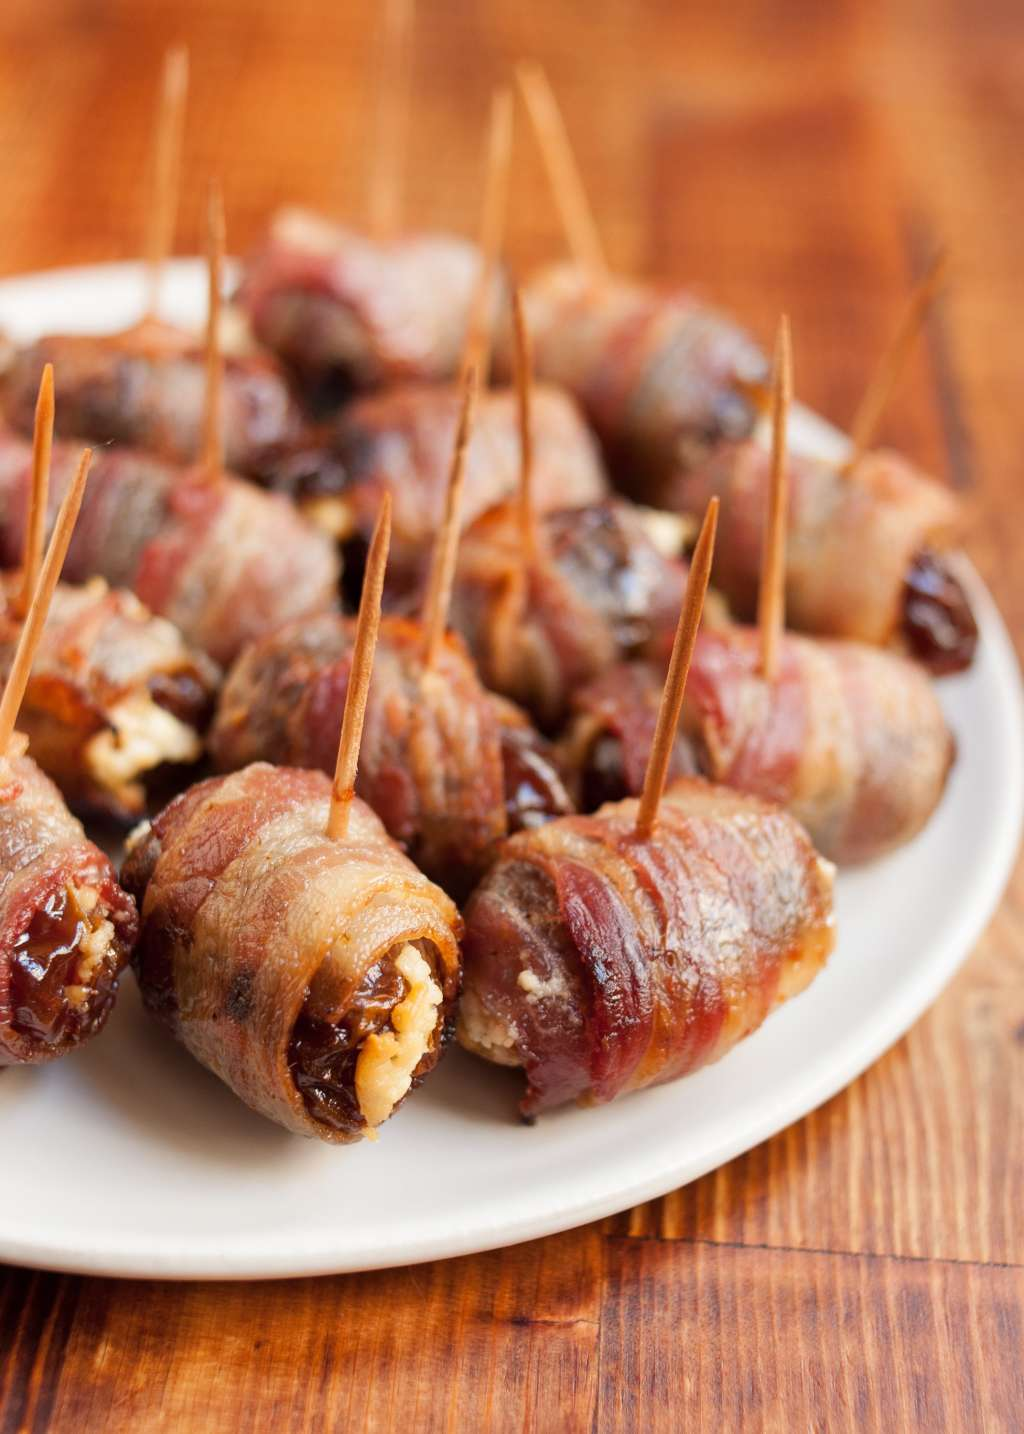 Bacon wrapped dates in Sydney